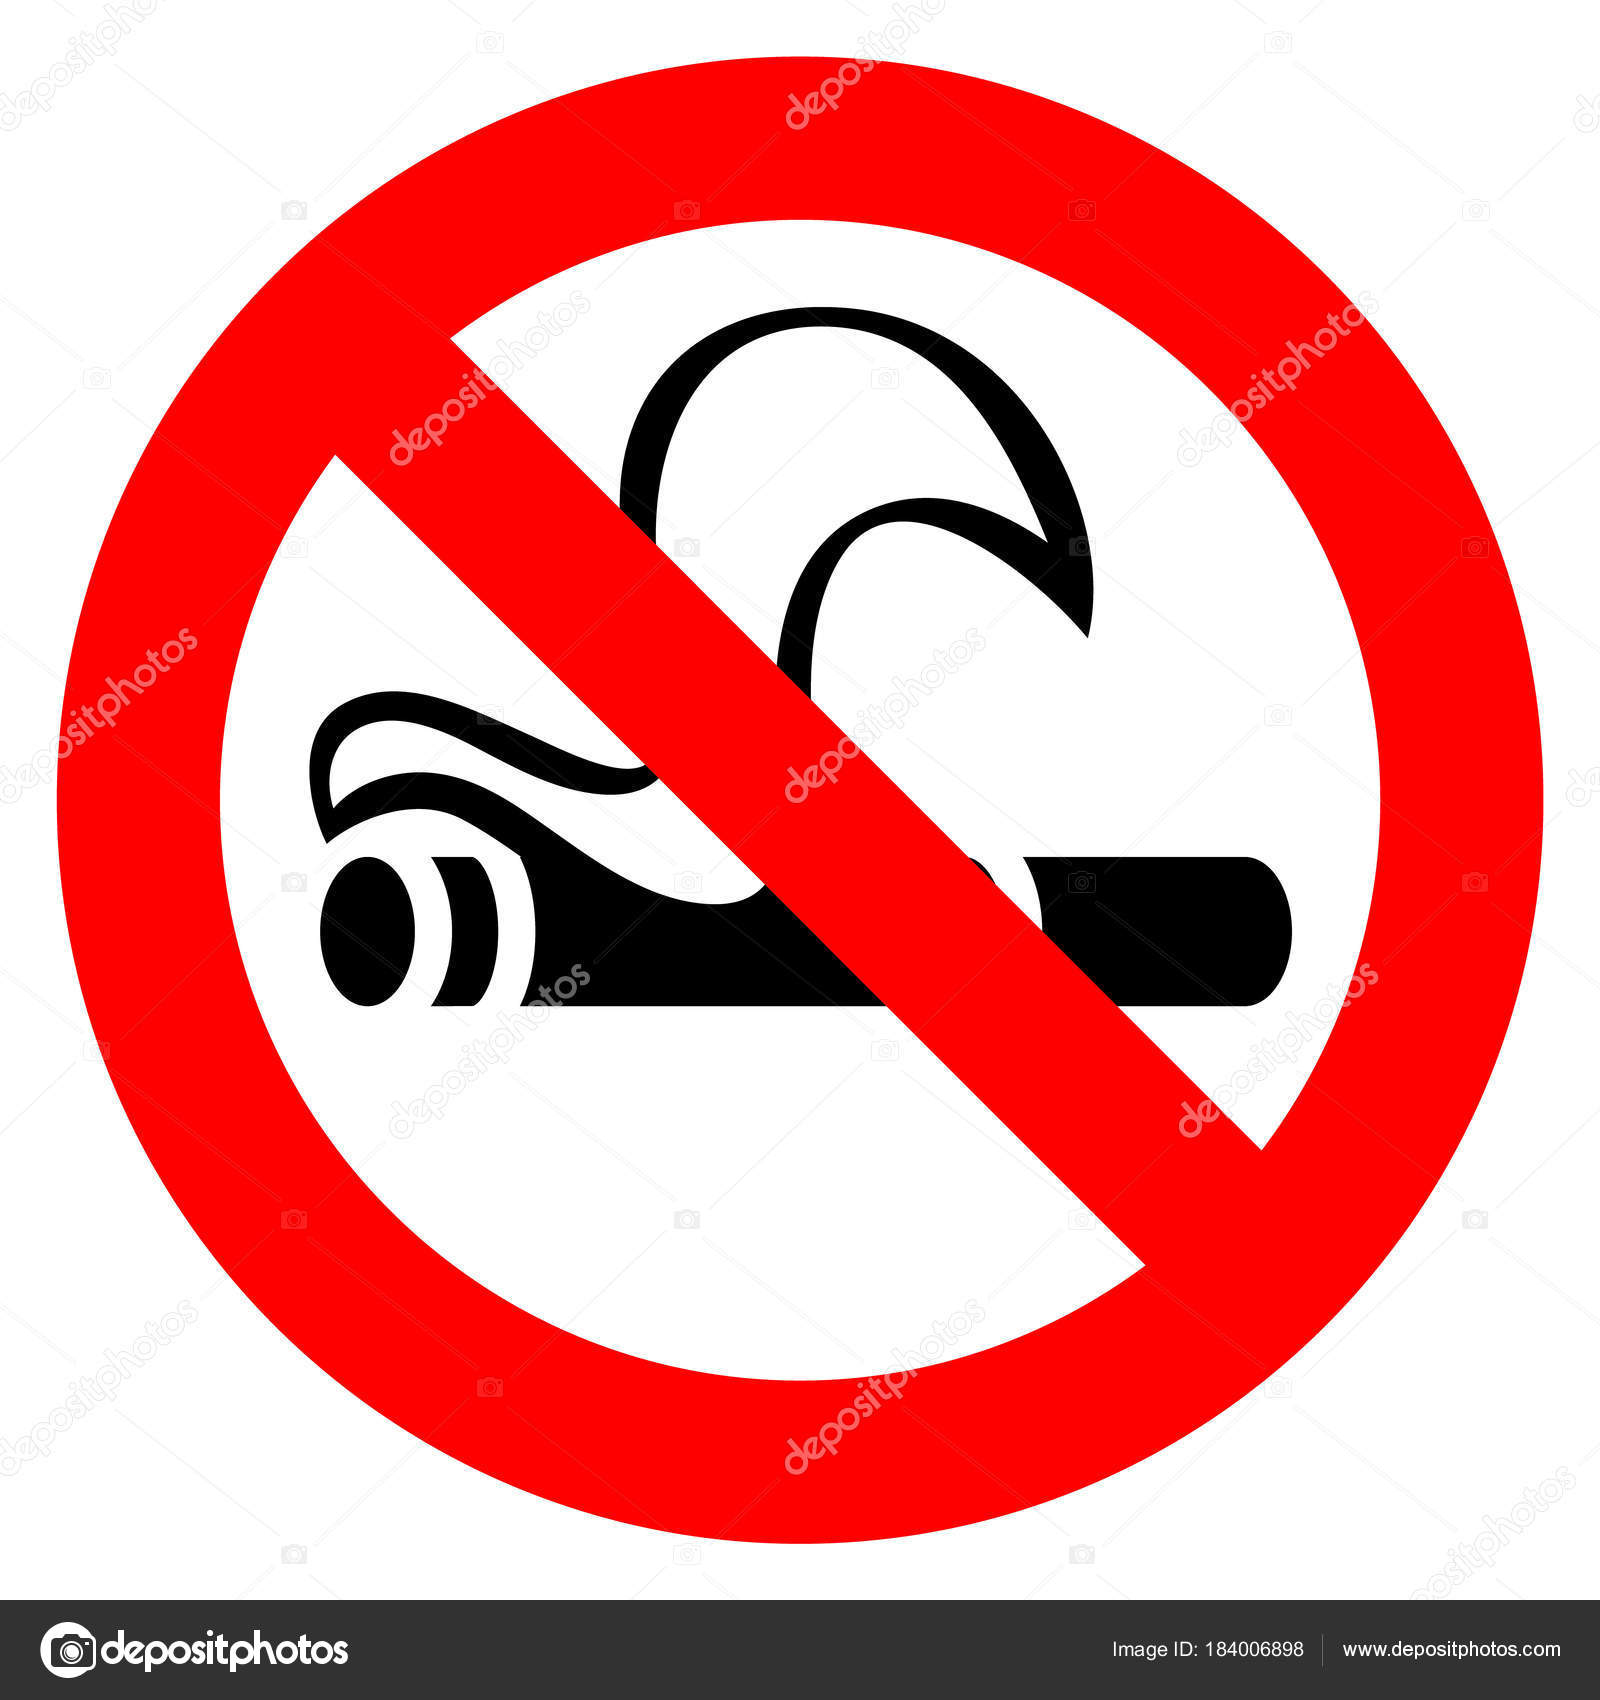 No smoking red sign stock vector ecelop 184006898 no smoking red sign stock vector buycottarizona Images